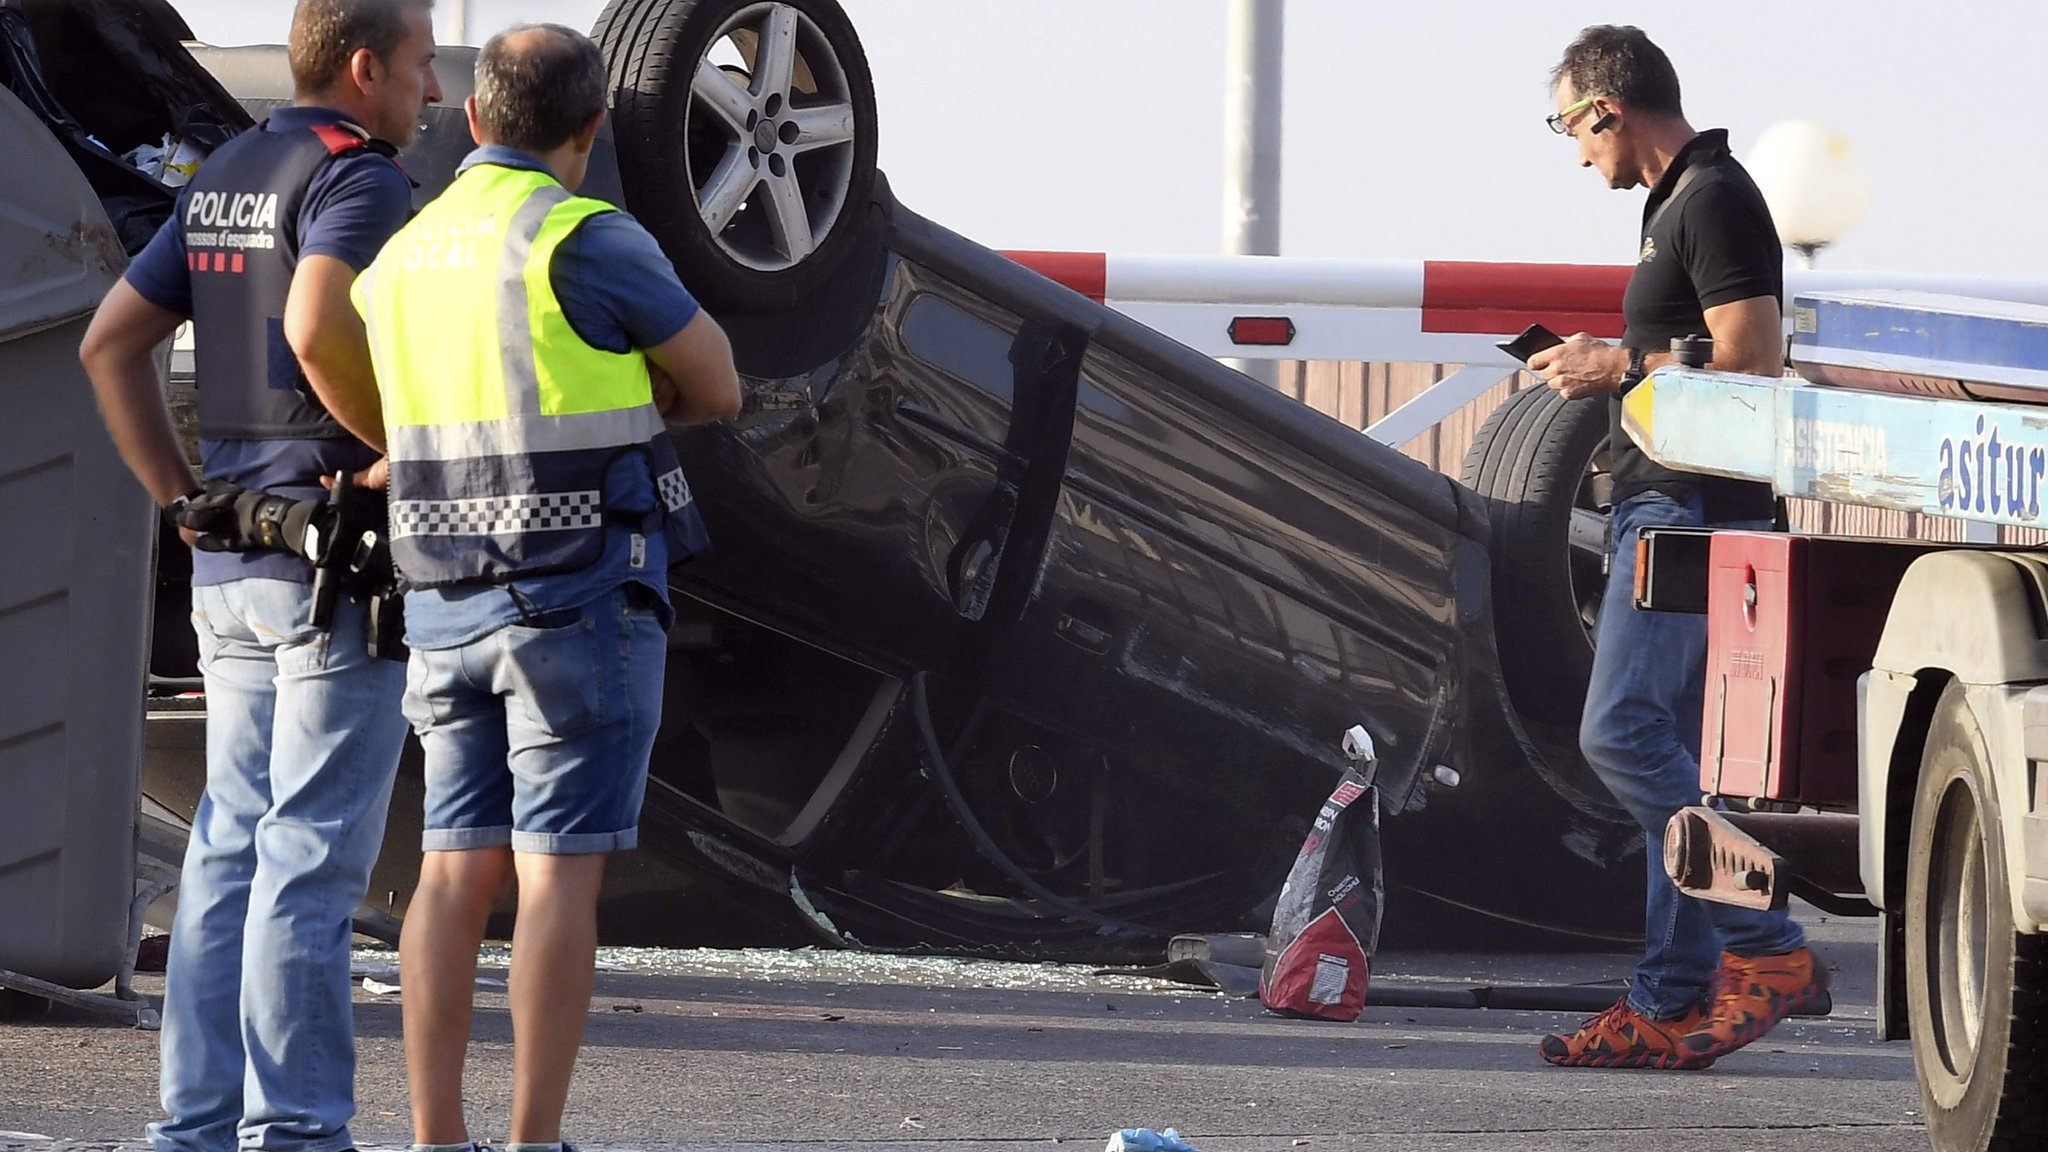 Spain attacks: One police officer killed four Cambrils suspects